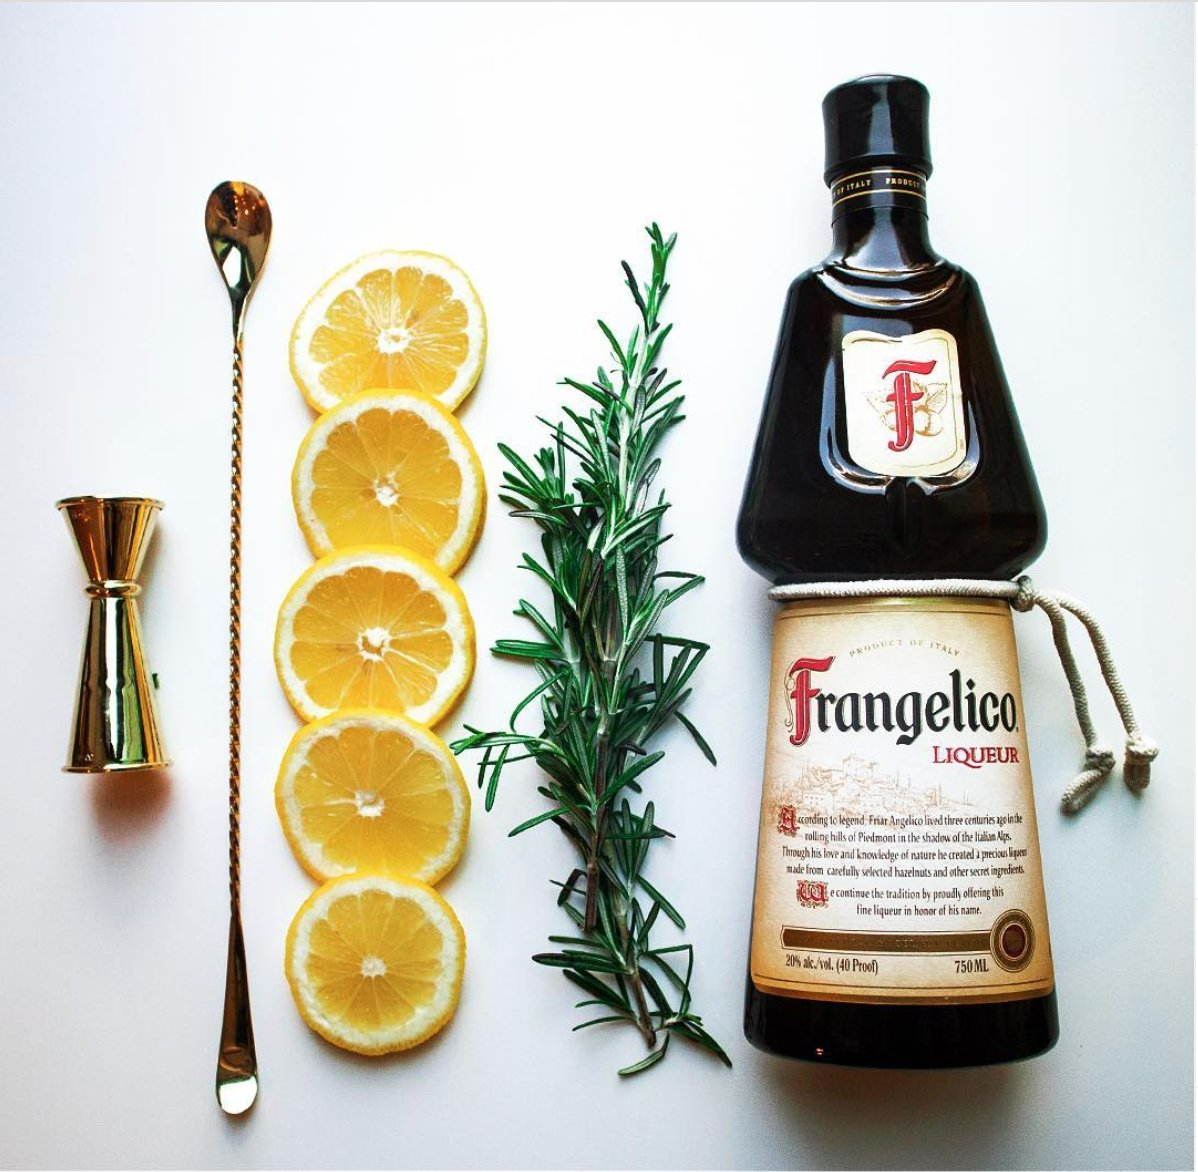 Simply irresistible. Simply Frangelico. https://t.co/UzEkj9hzZq